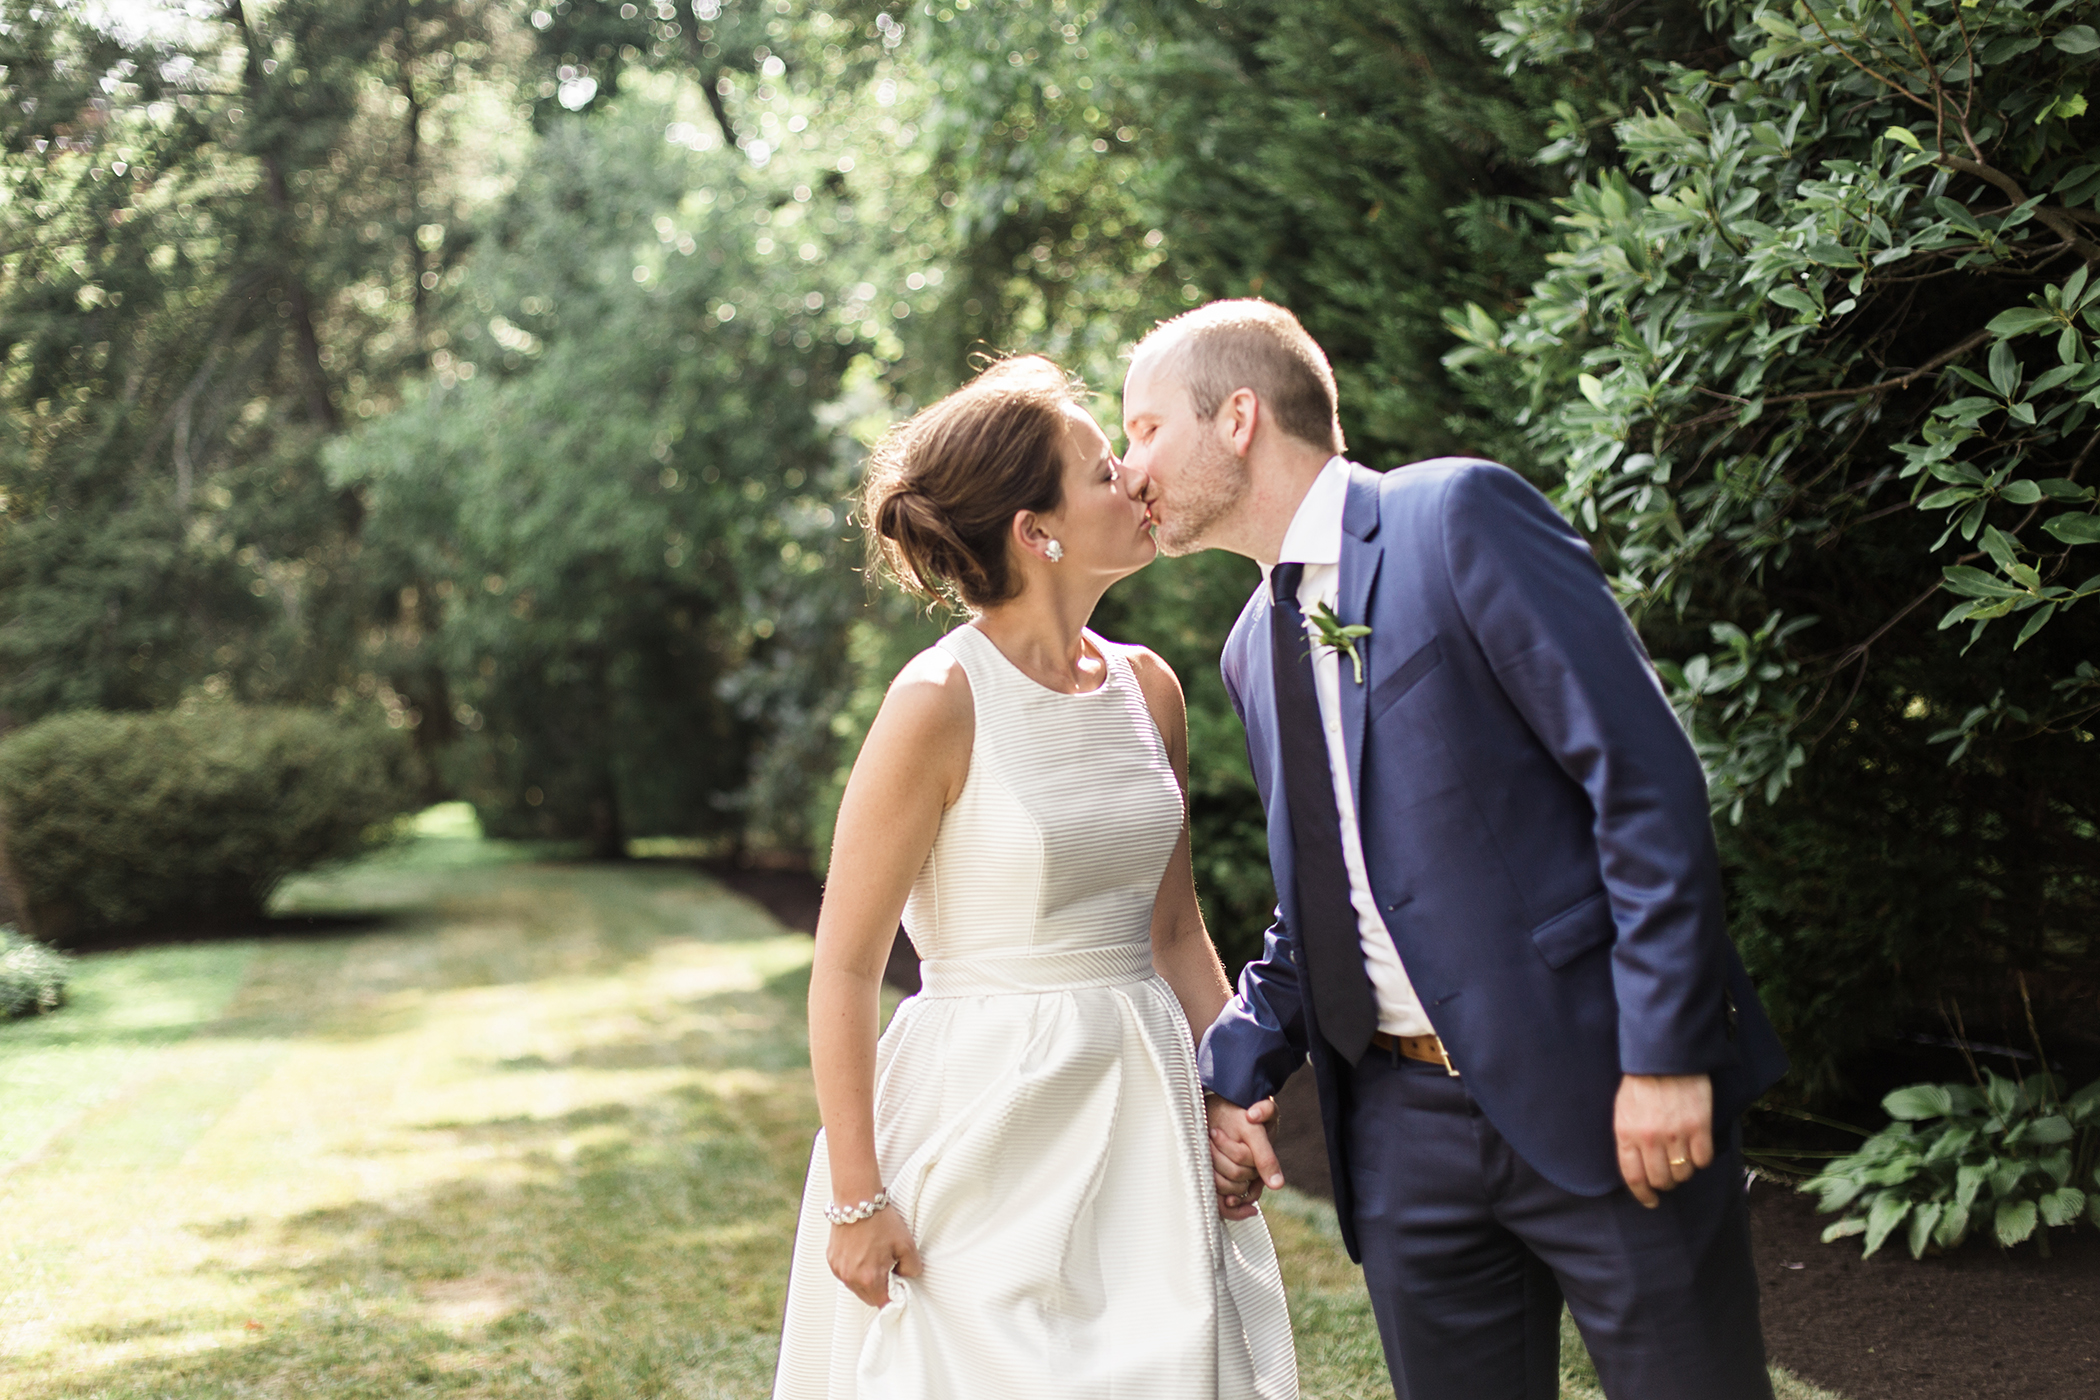 Courtney and Dave's Preppy Malvern Wedding styled by J. Crew. Photographed By Hudson-Nichols Photography.